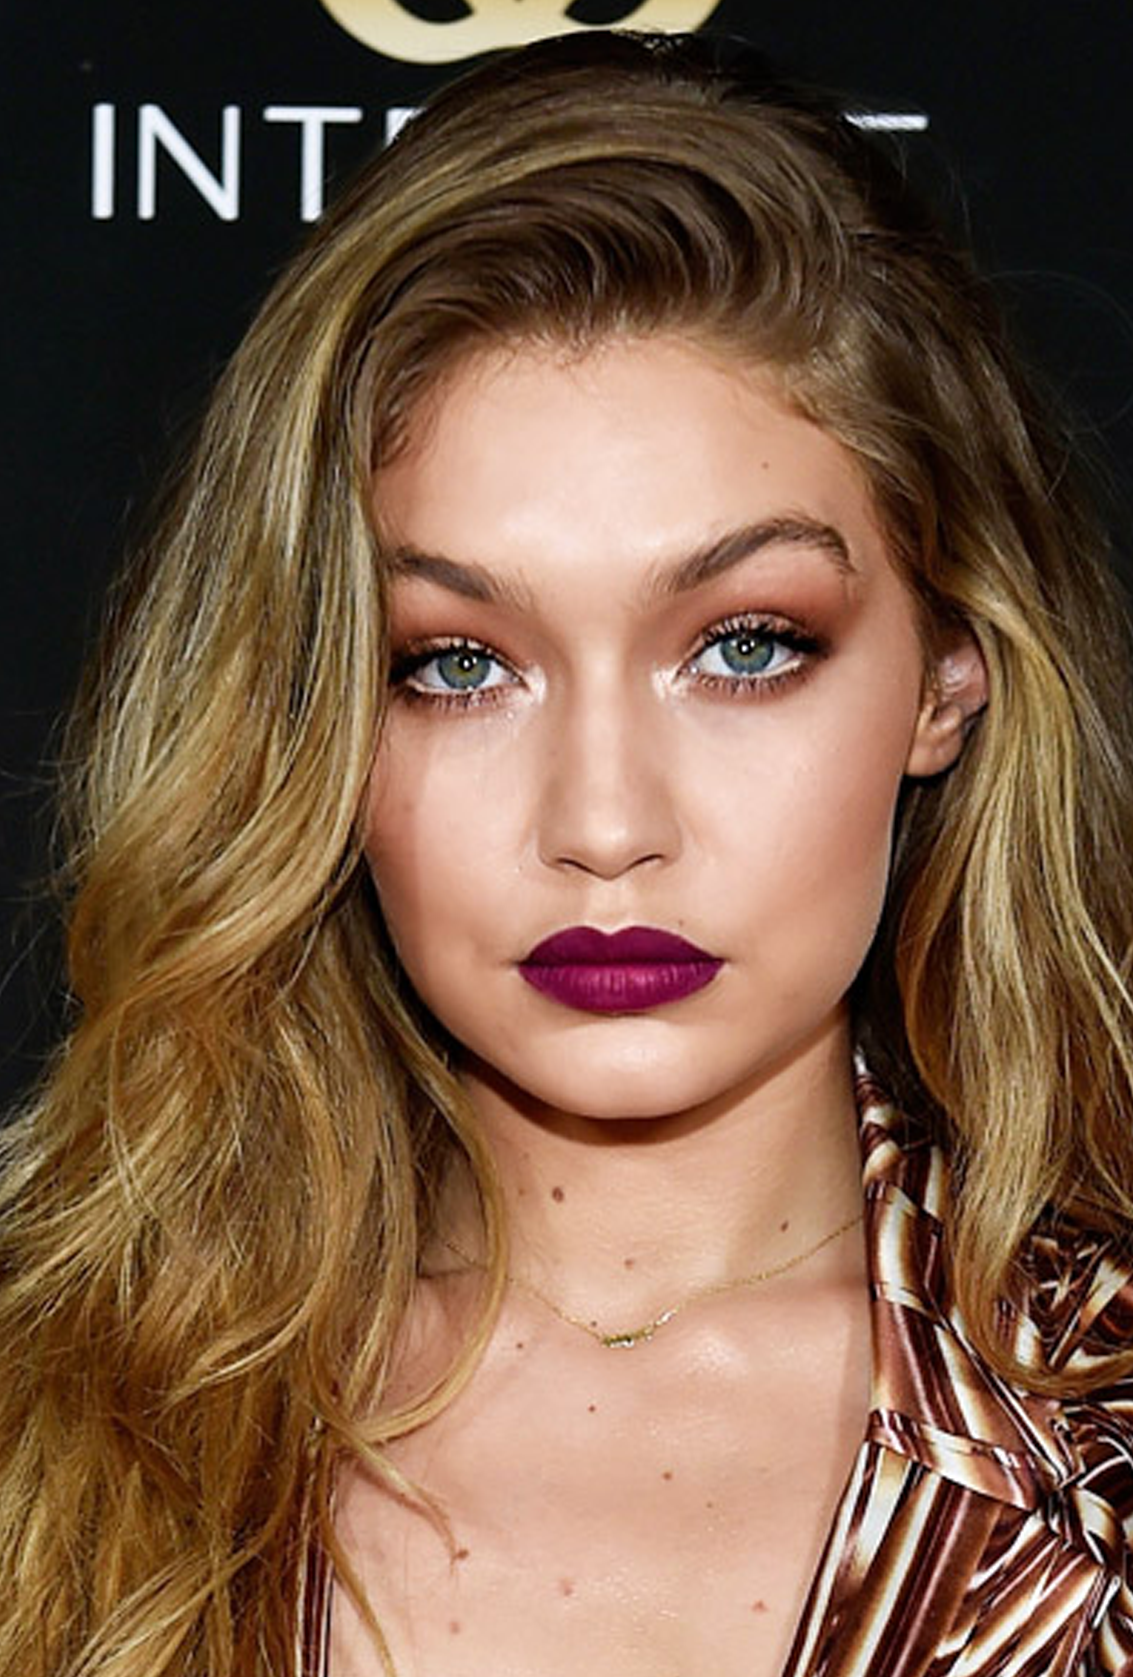 7 Makes Poderosas de Gigi Hadid 5